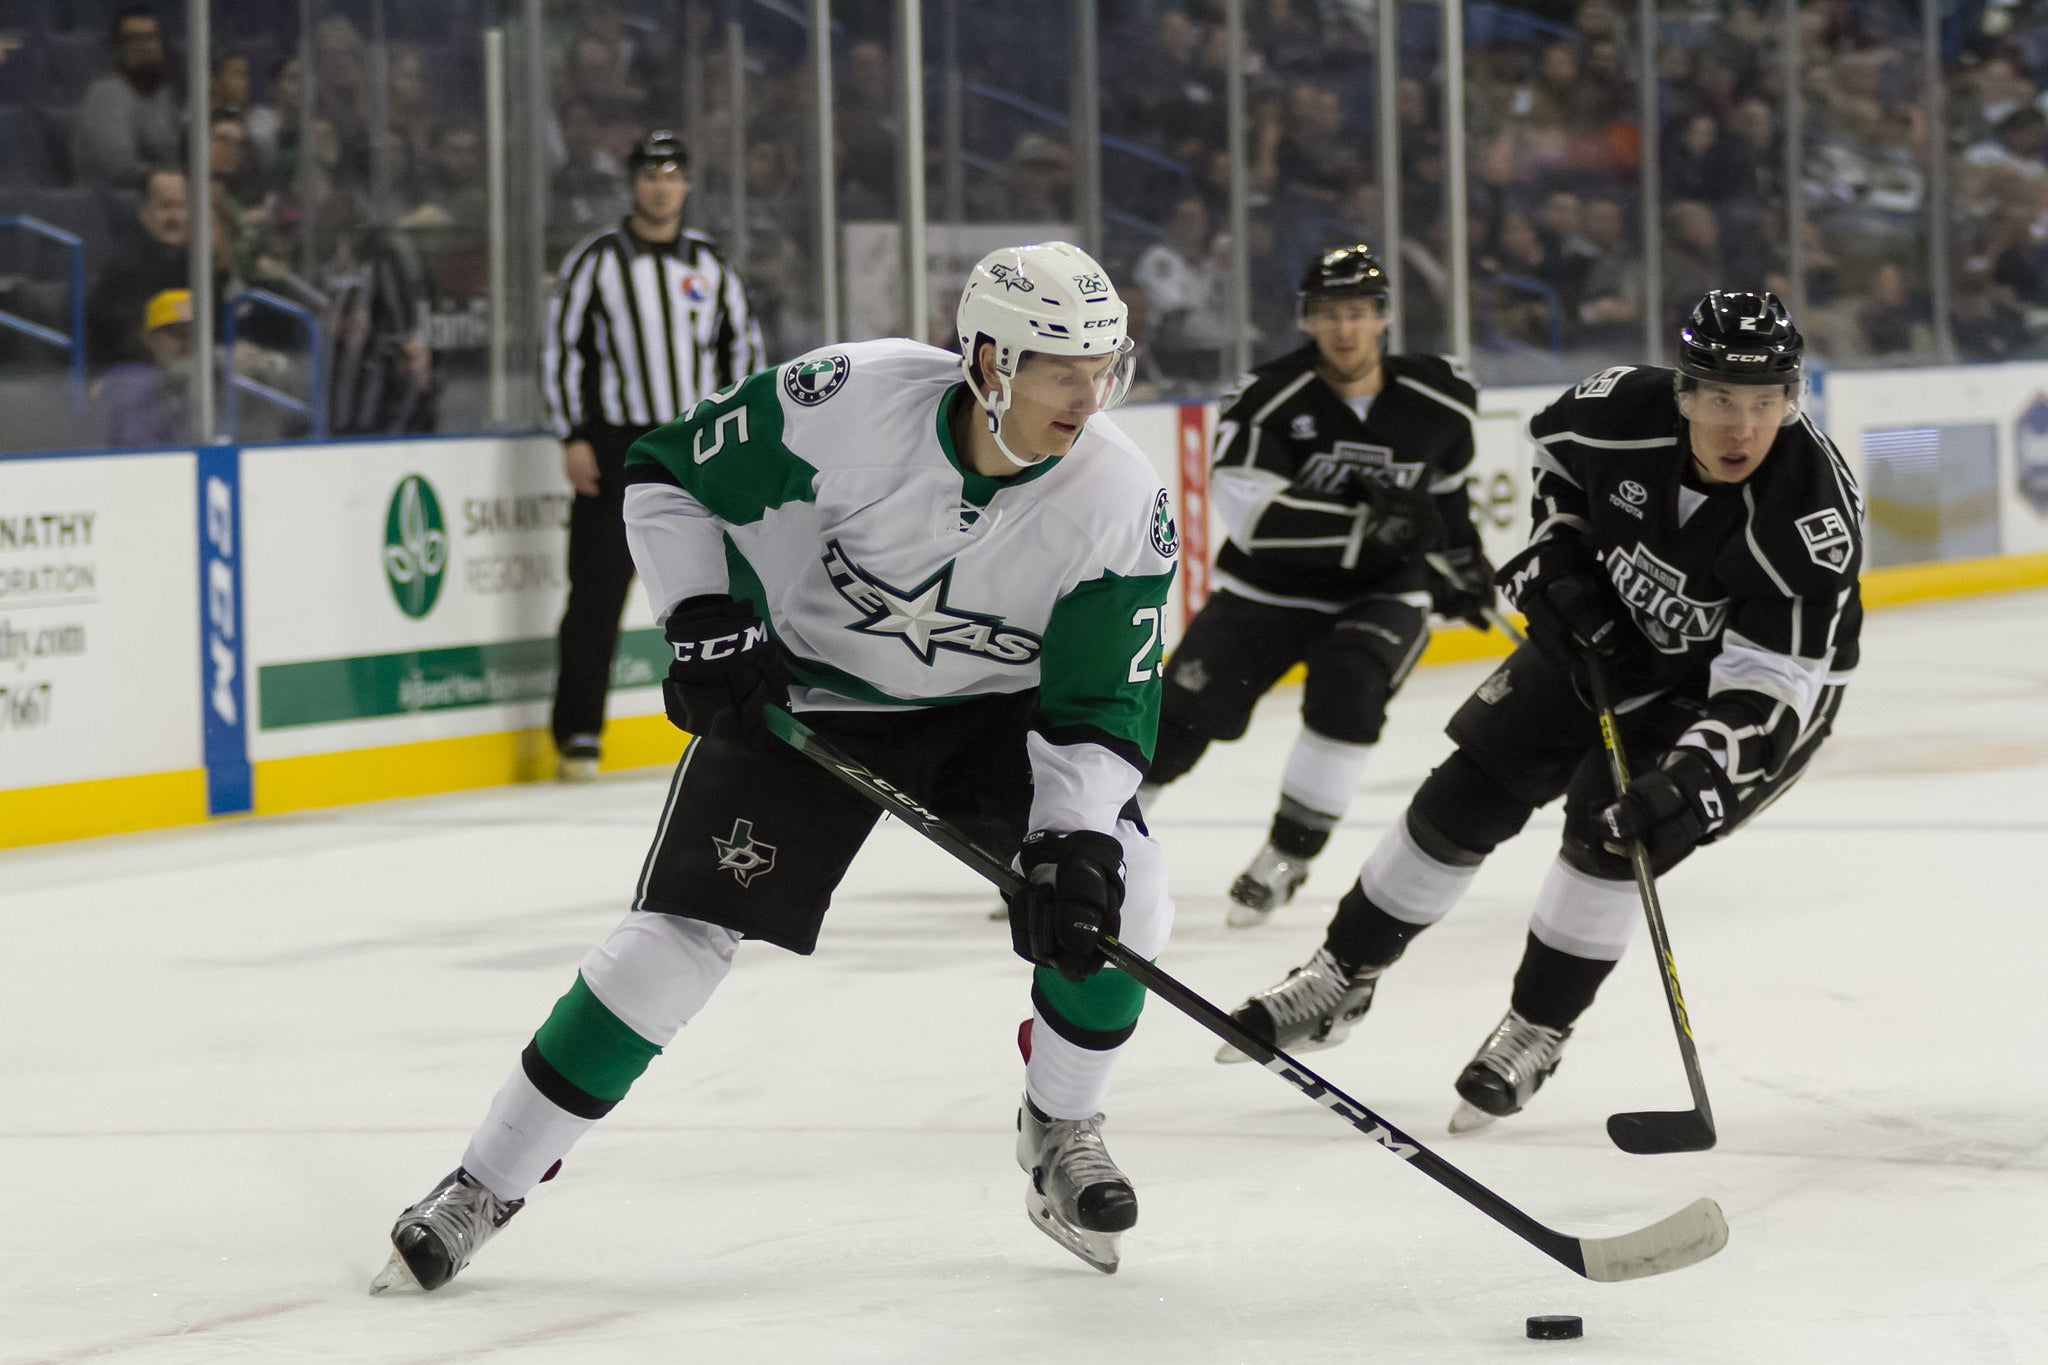 Reign Drop Close One to Stars